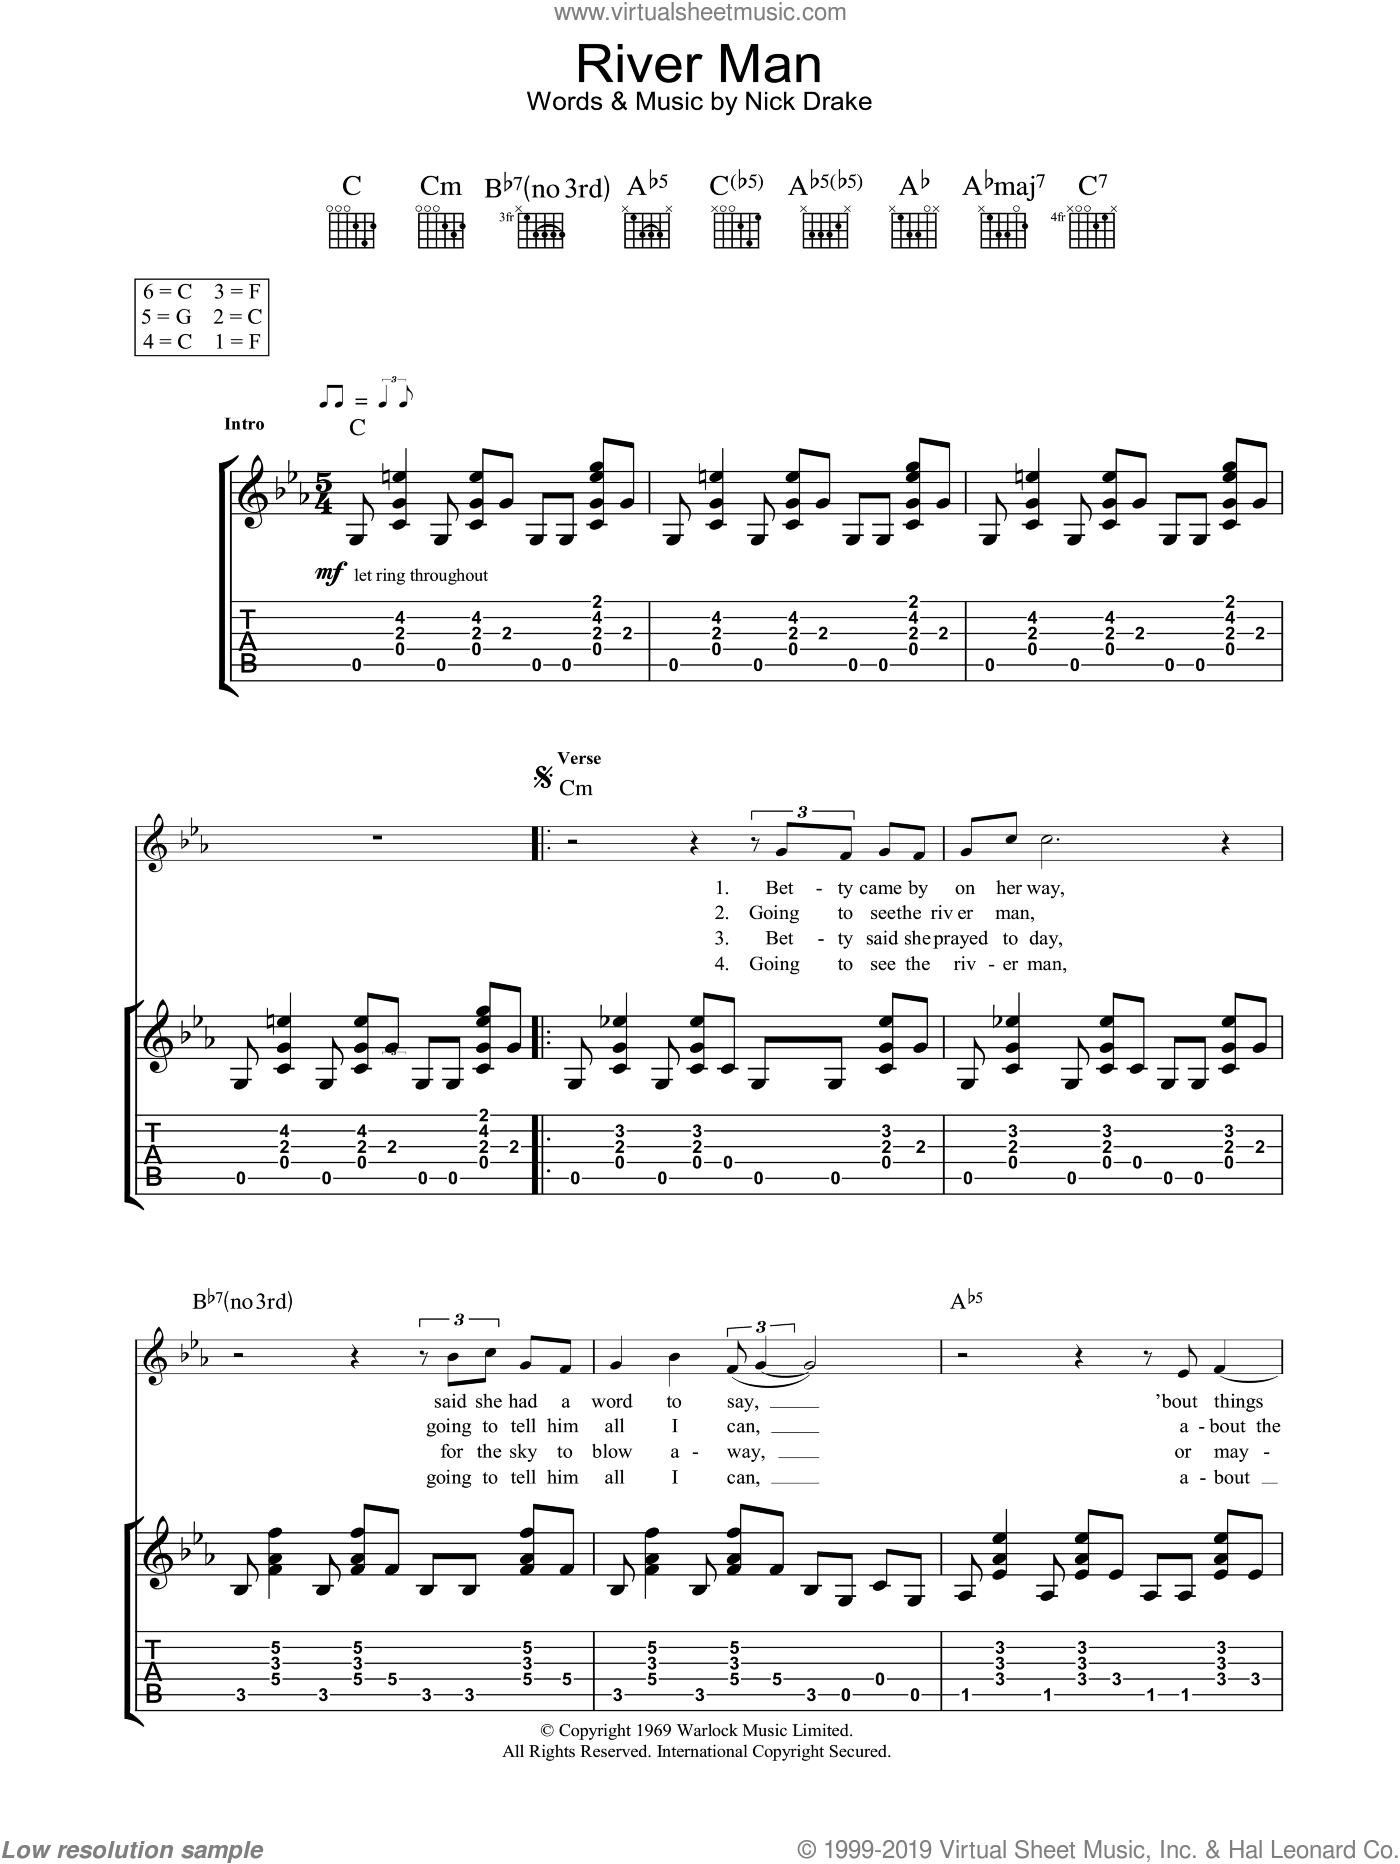 River Man sheet music for guitar (tablature) by Nick Drake, intermediate. Score Image Preview.